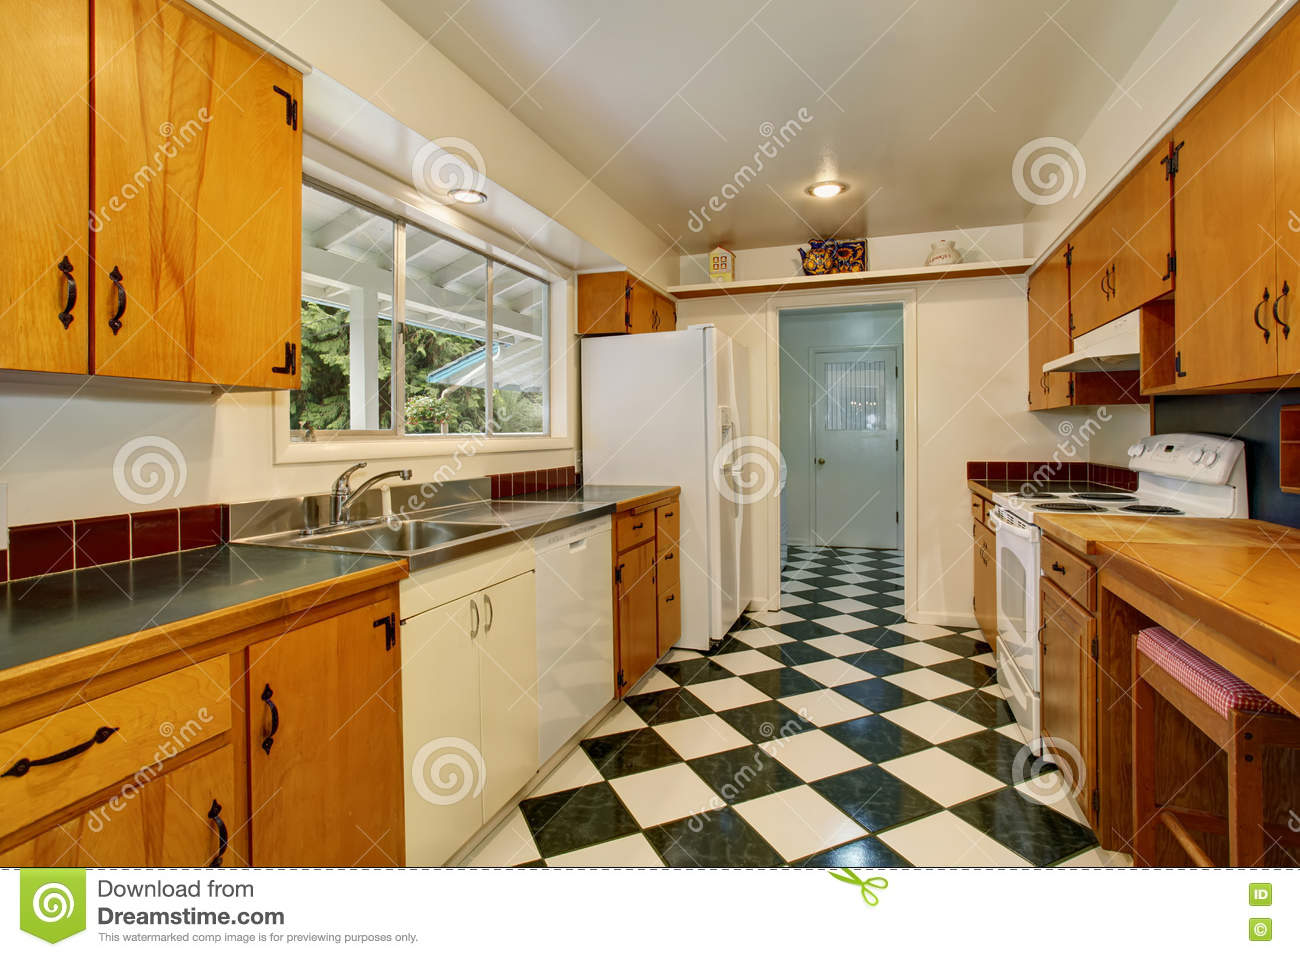 Narrow Kitchen Room Interior With Light Brown Cabinets White And Black Tile Stock Photo Image Of Shiny Kitchen 74850962